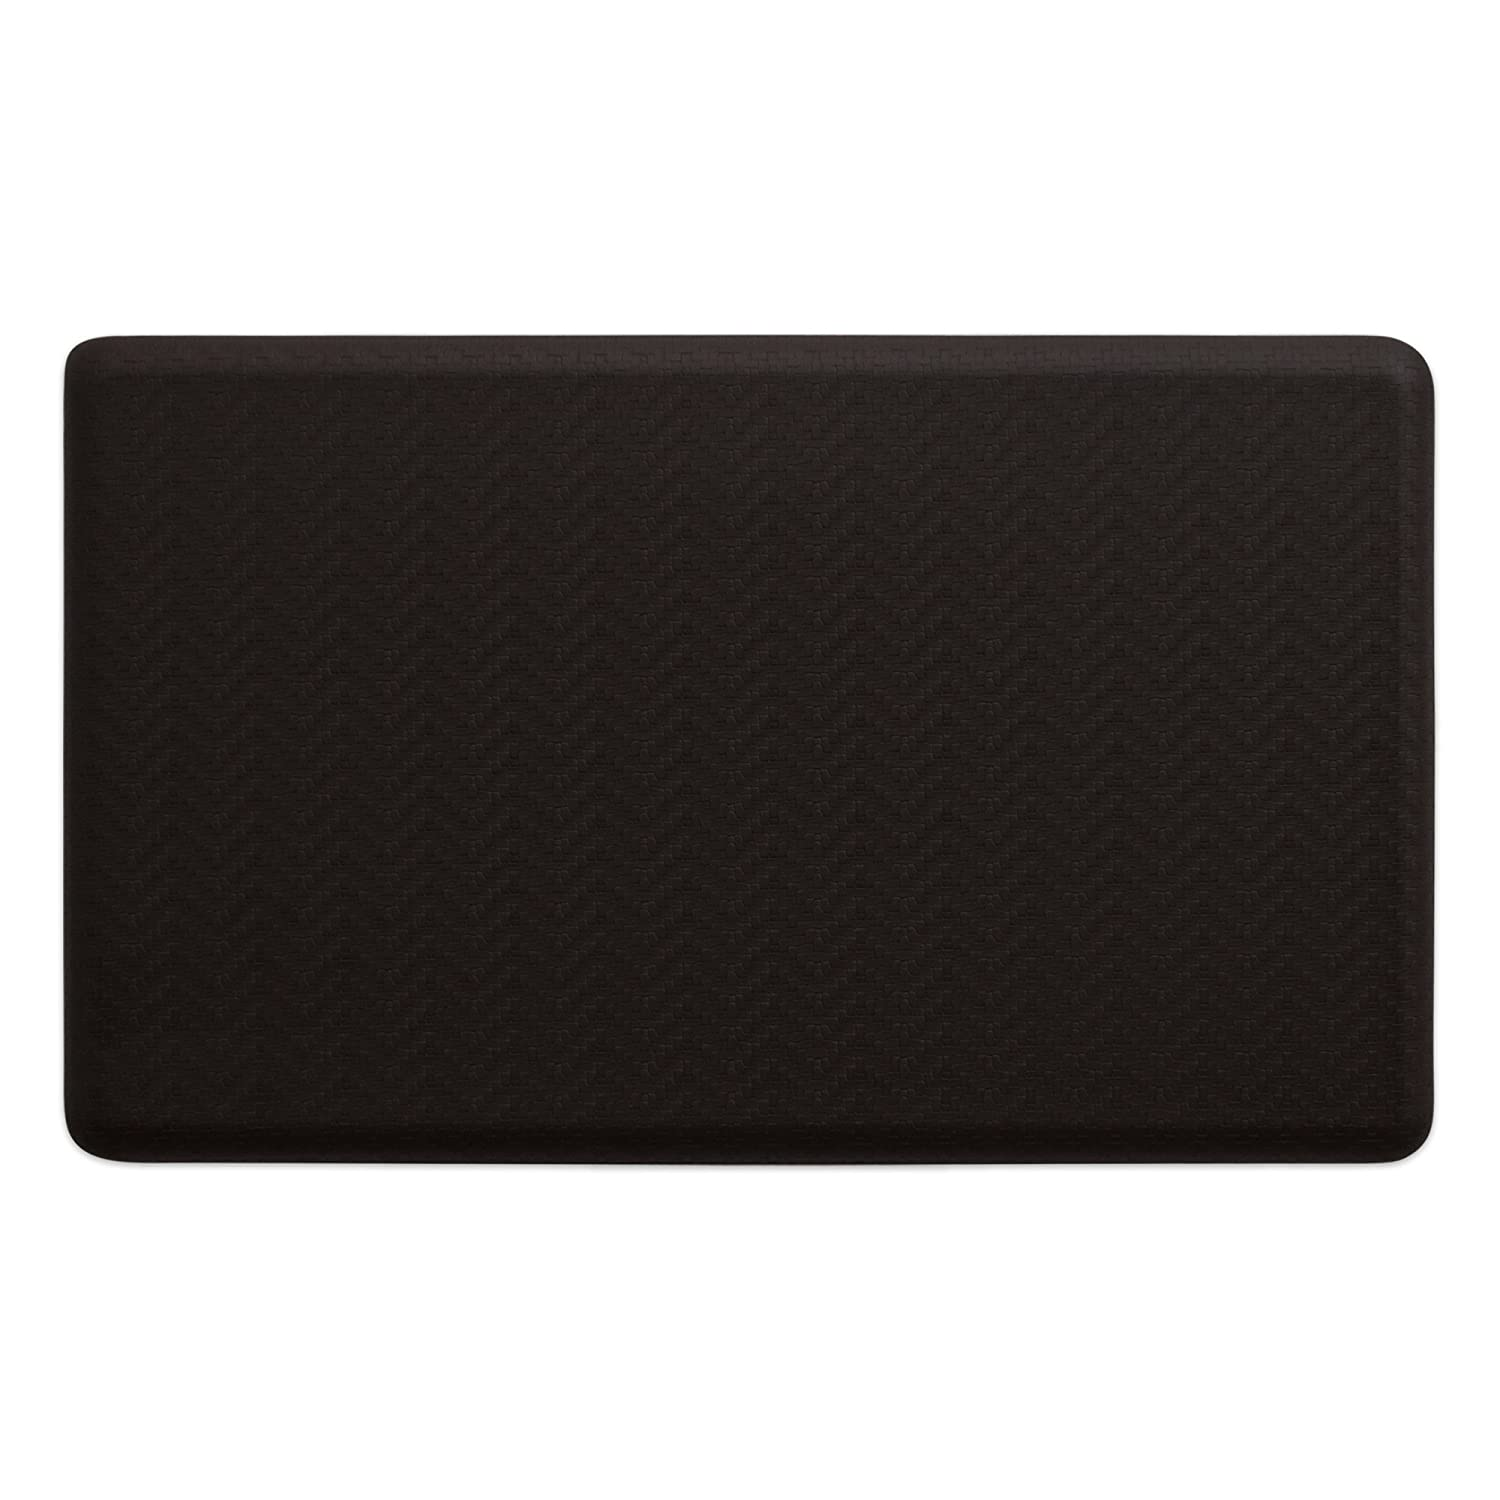 NewLife by GelPro Multi-Purpose Comfort Mat, Grasscloth Charcoal, 18x30-Inch Let' s Gel Inc 817699018489